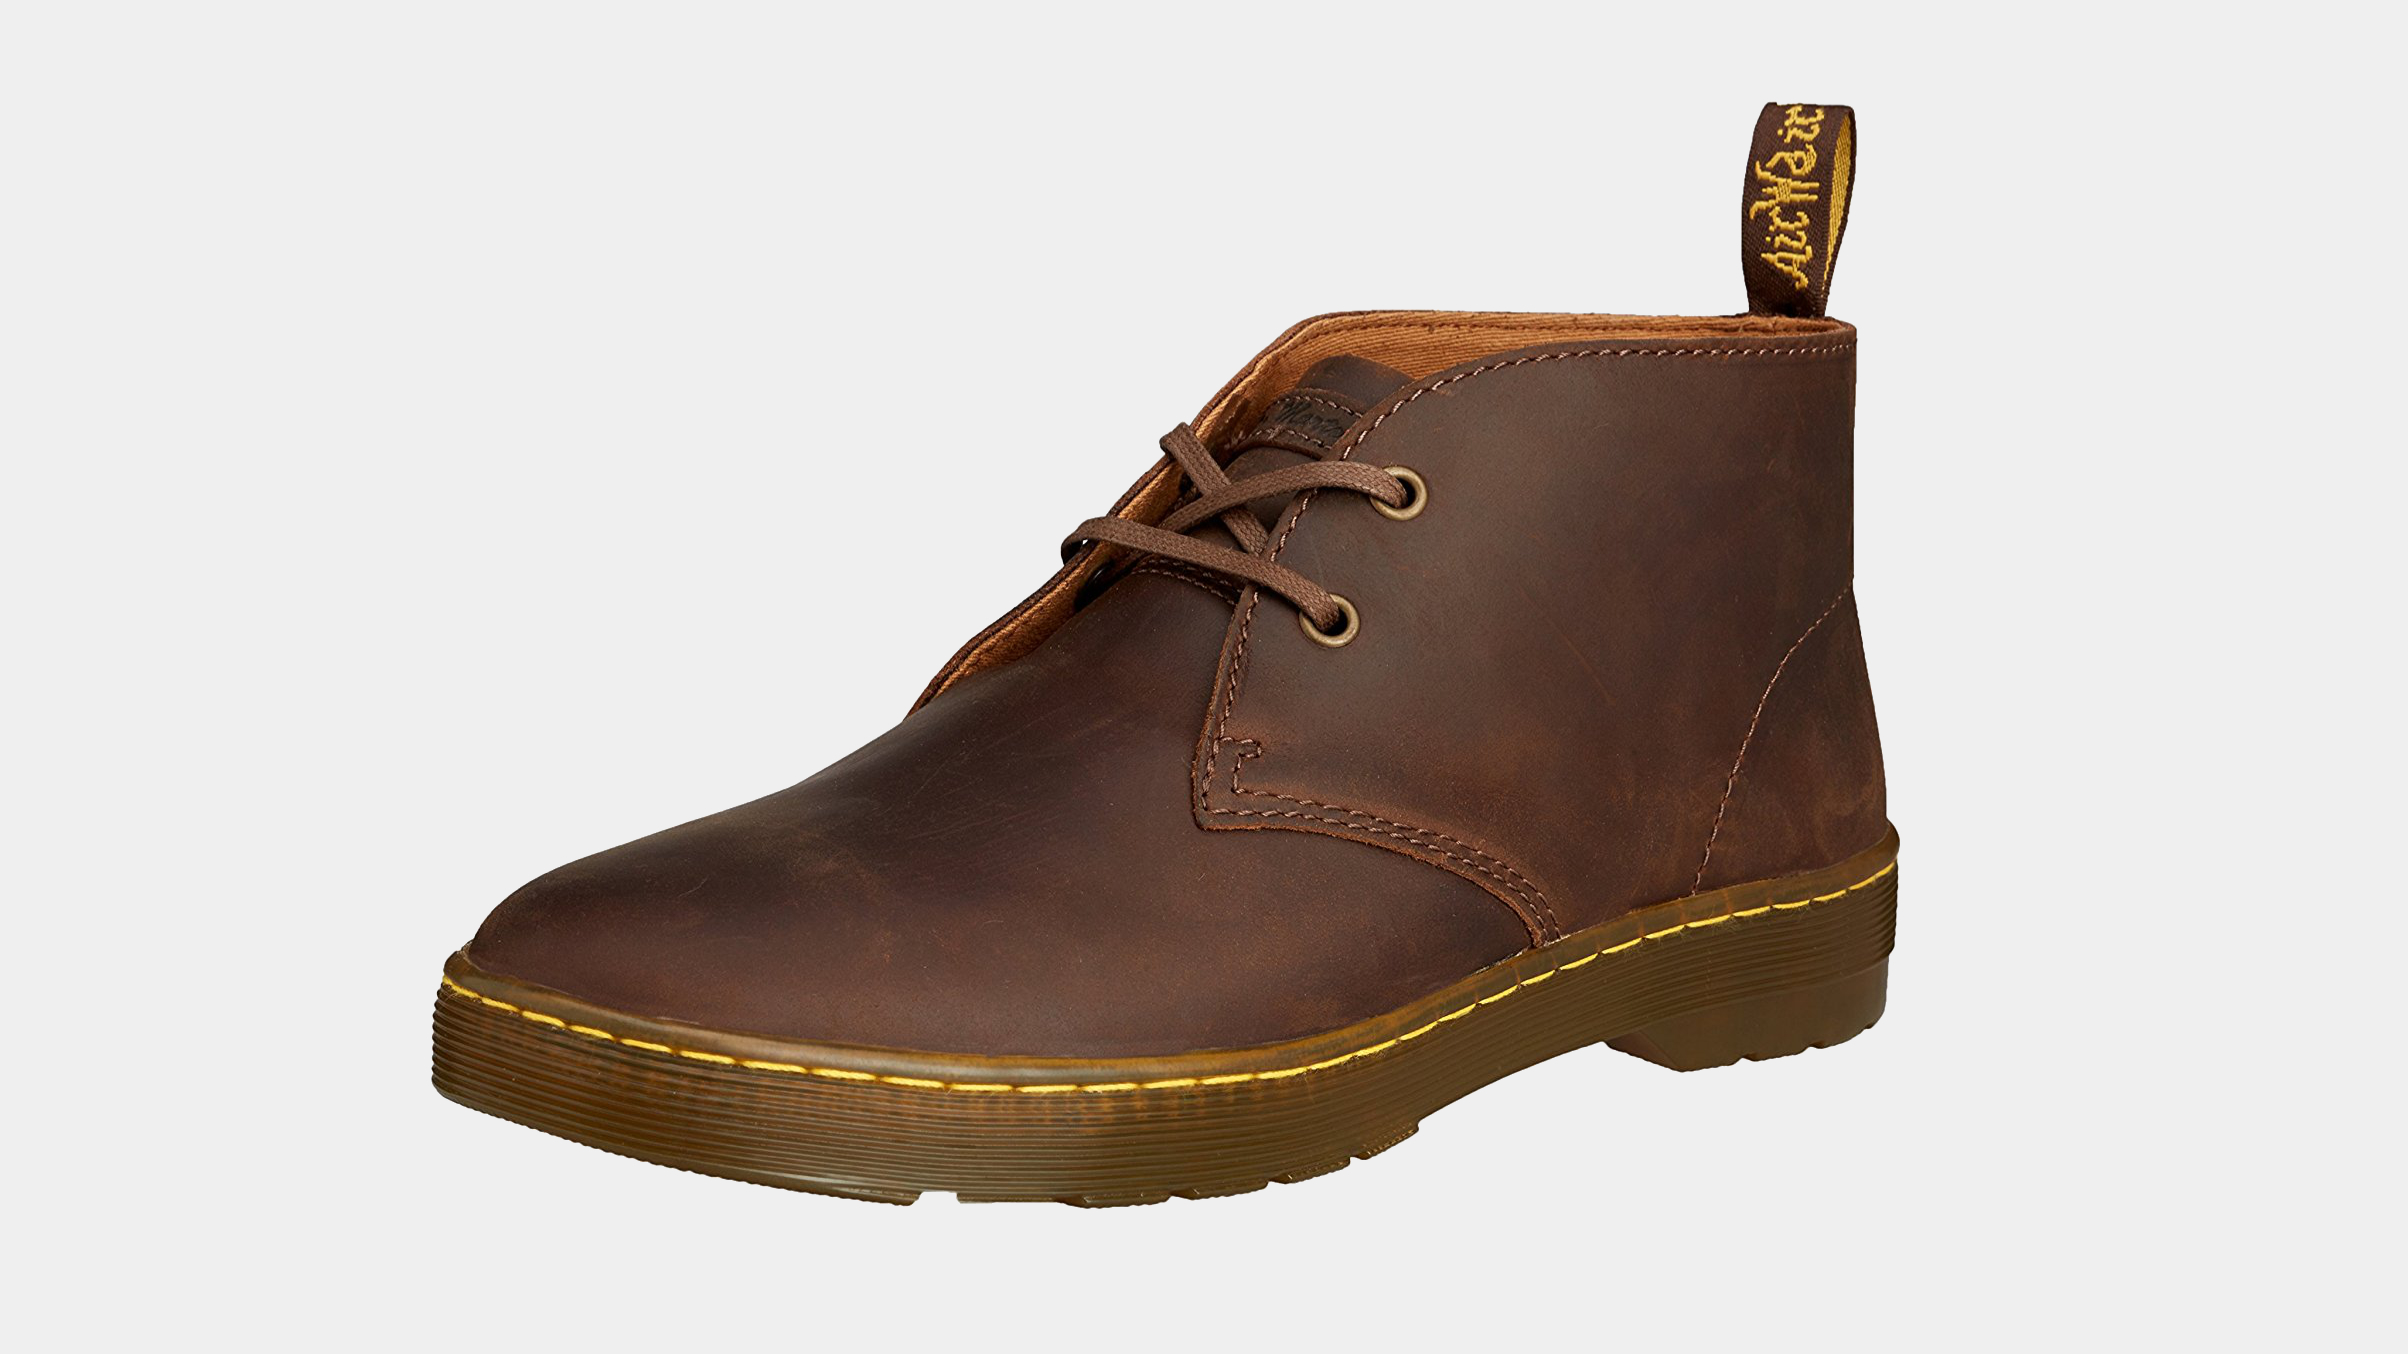 Dr Martens Leather Chukka Men's Winter Fashion